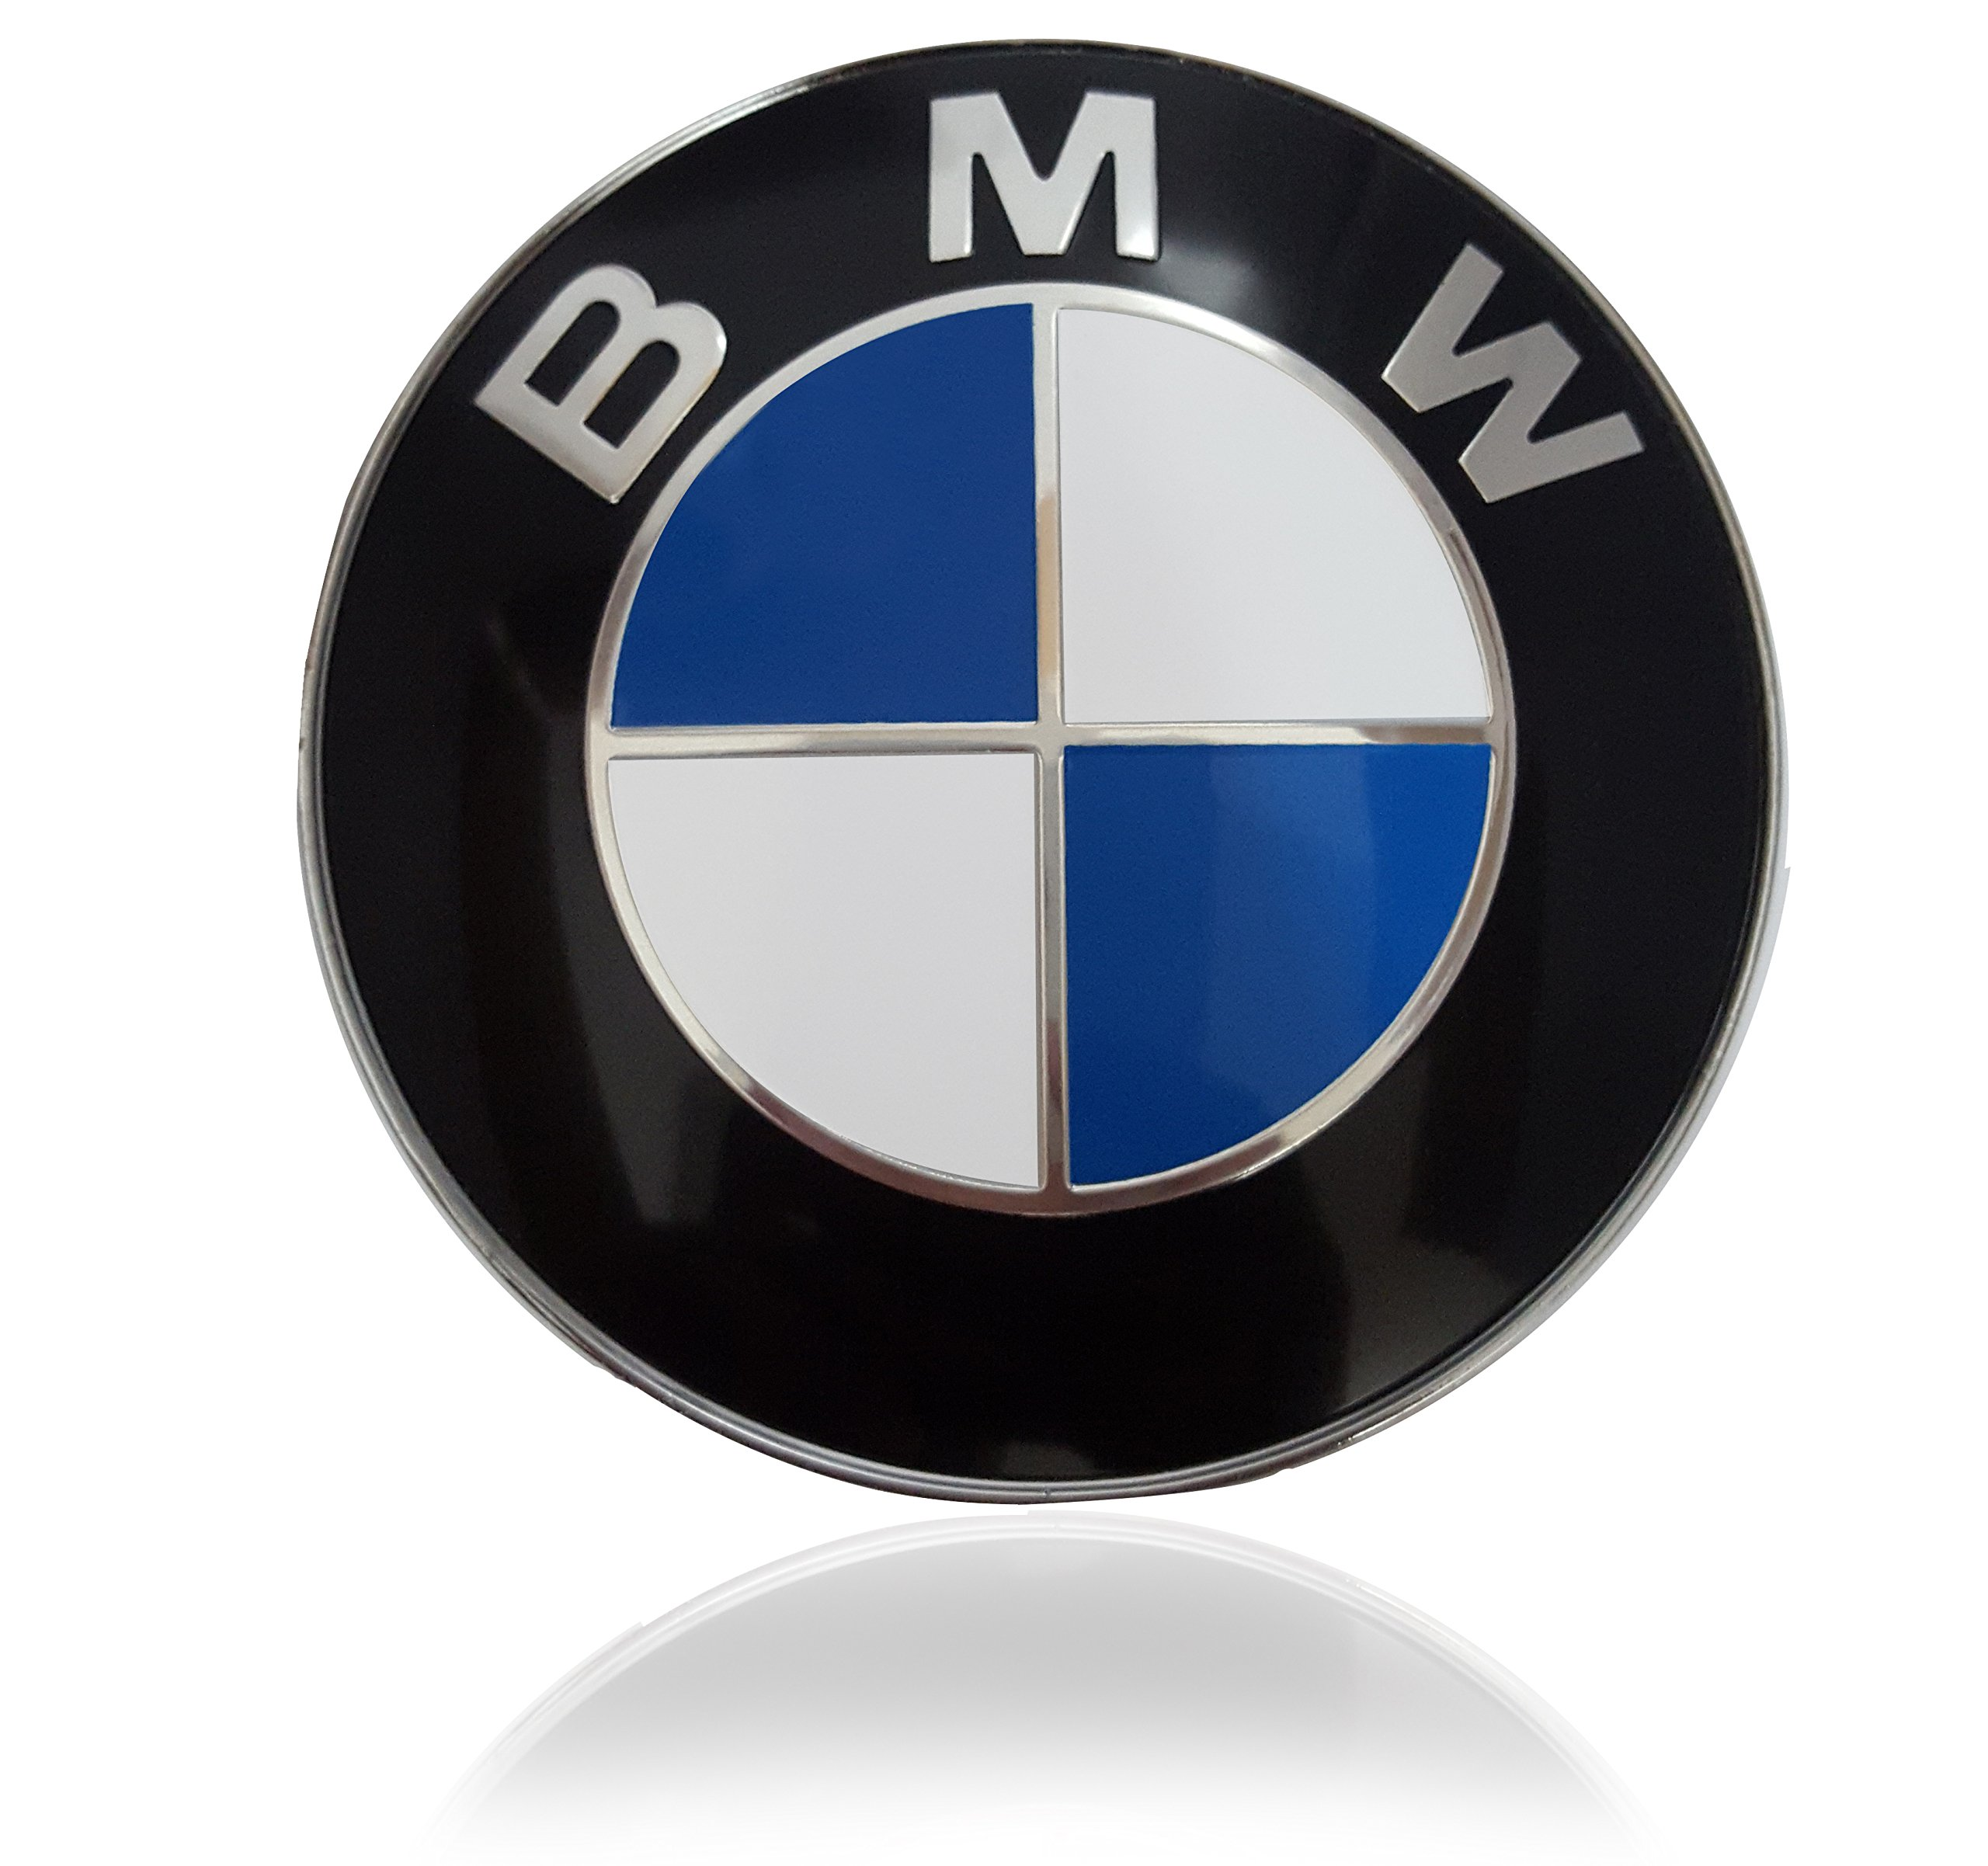 bmw emblem high quality logo replacement for hood trunk 82mm for all models b chickadee. Black Bedroom Furniture Sets. Home Design Ideas